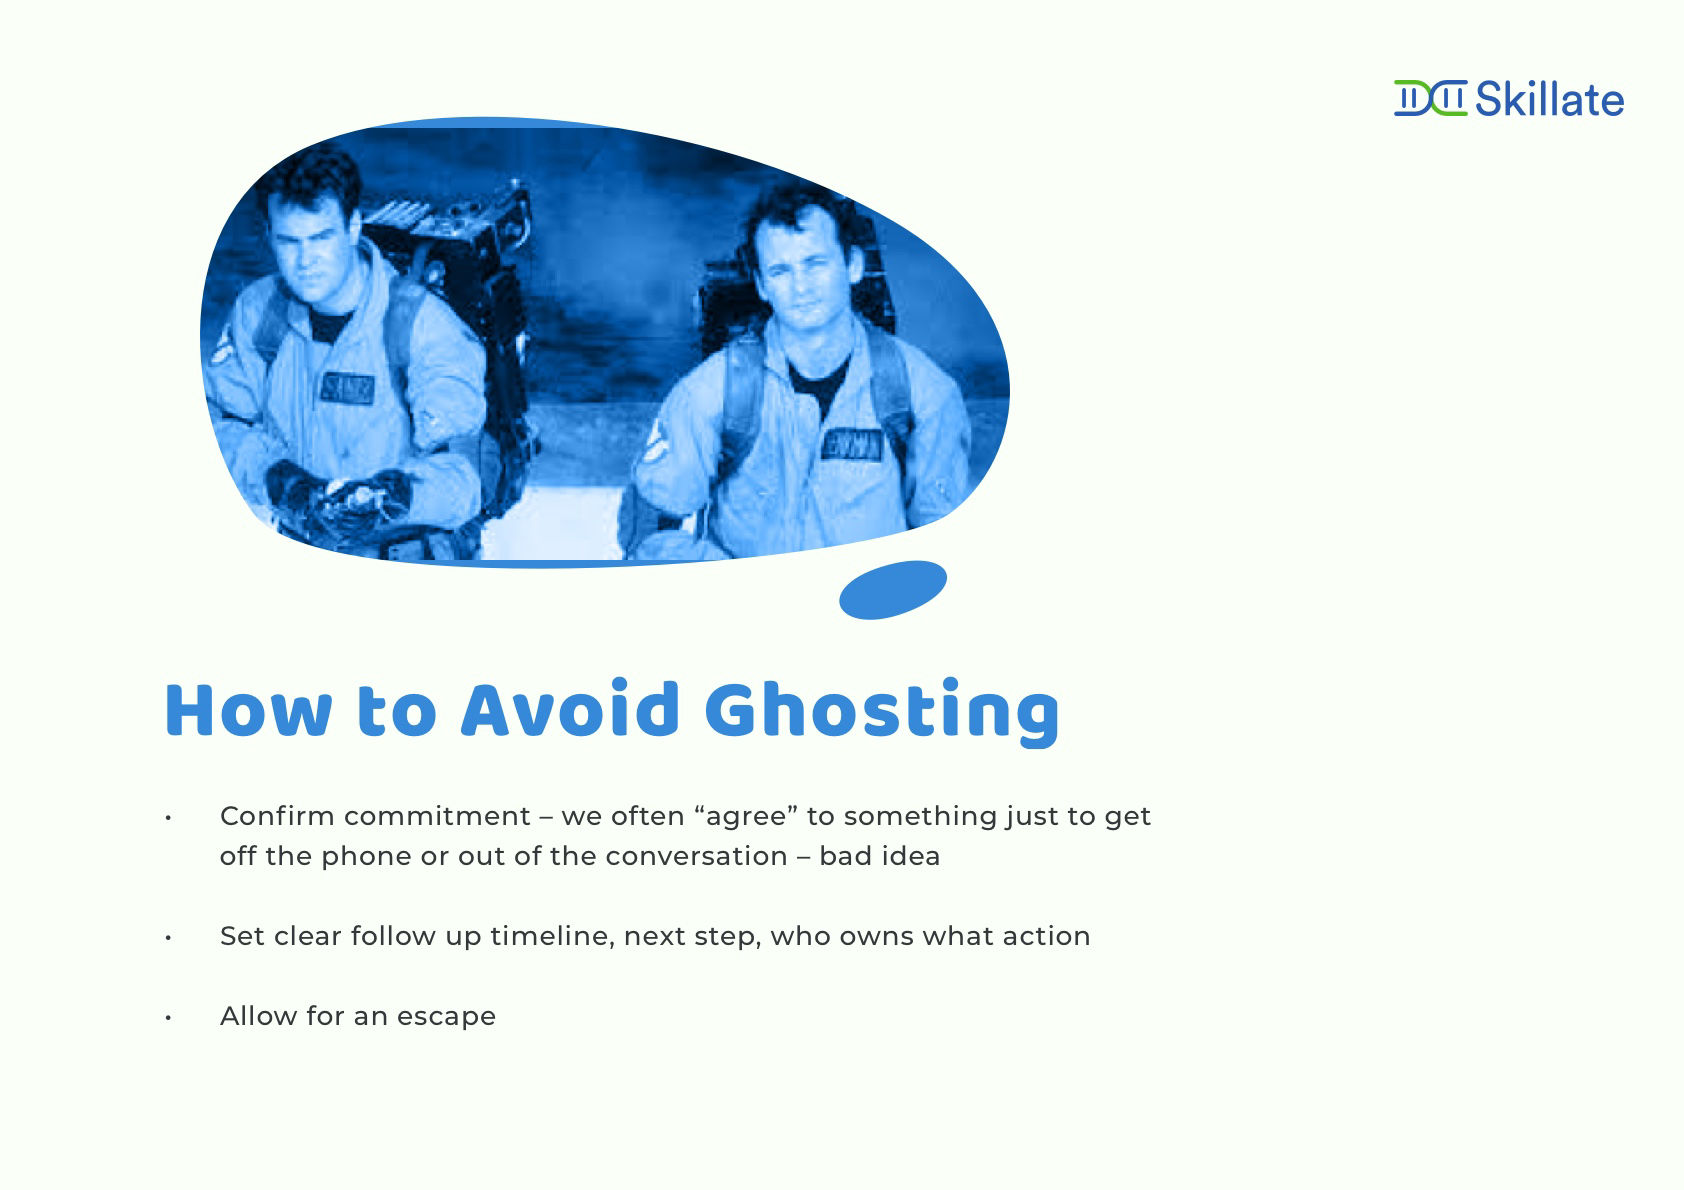 tips to avoid ghosting